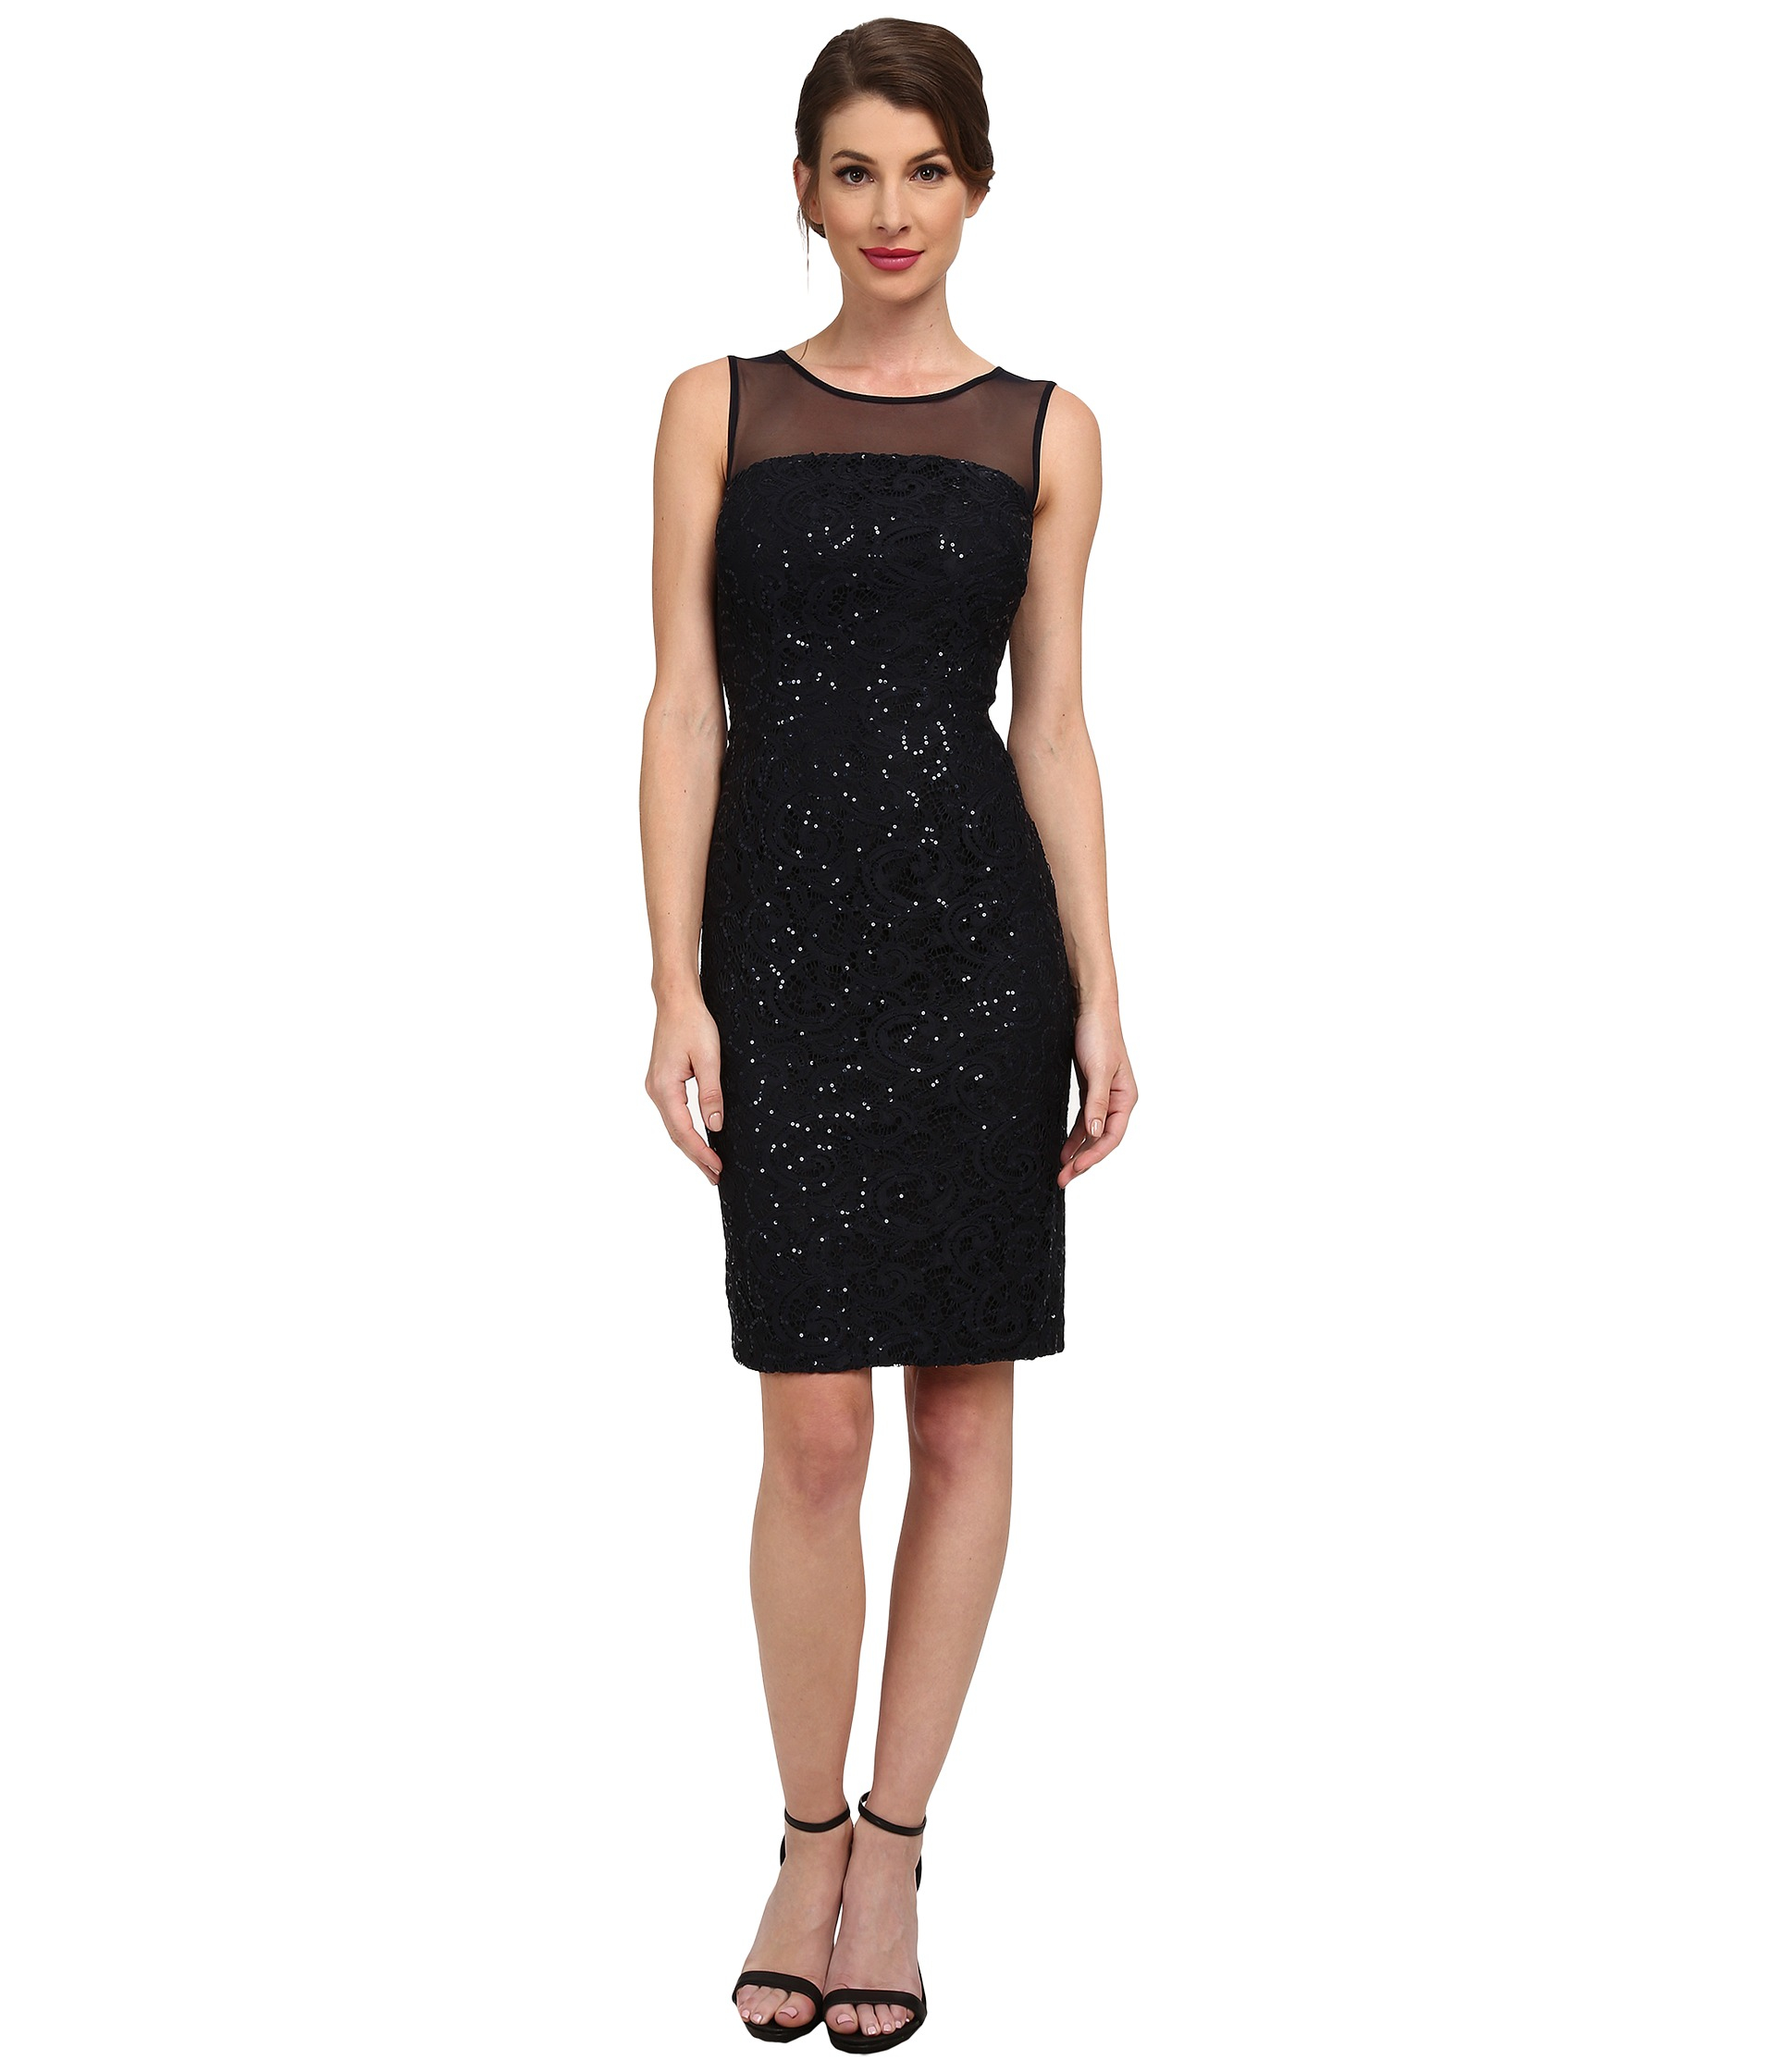 Calvin Klein Sequin Dress With Illusion Yoke In Navy Blue